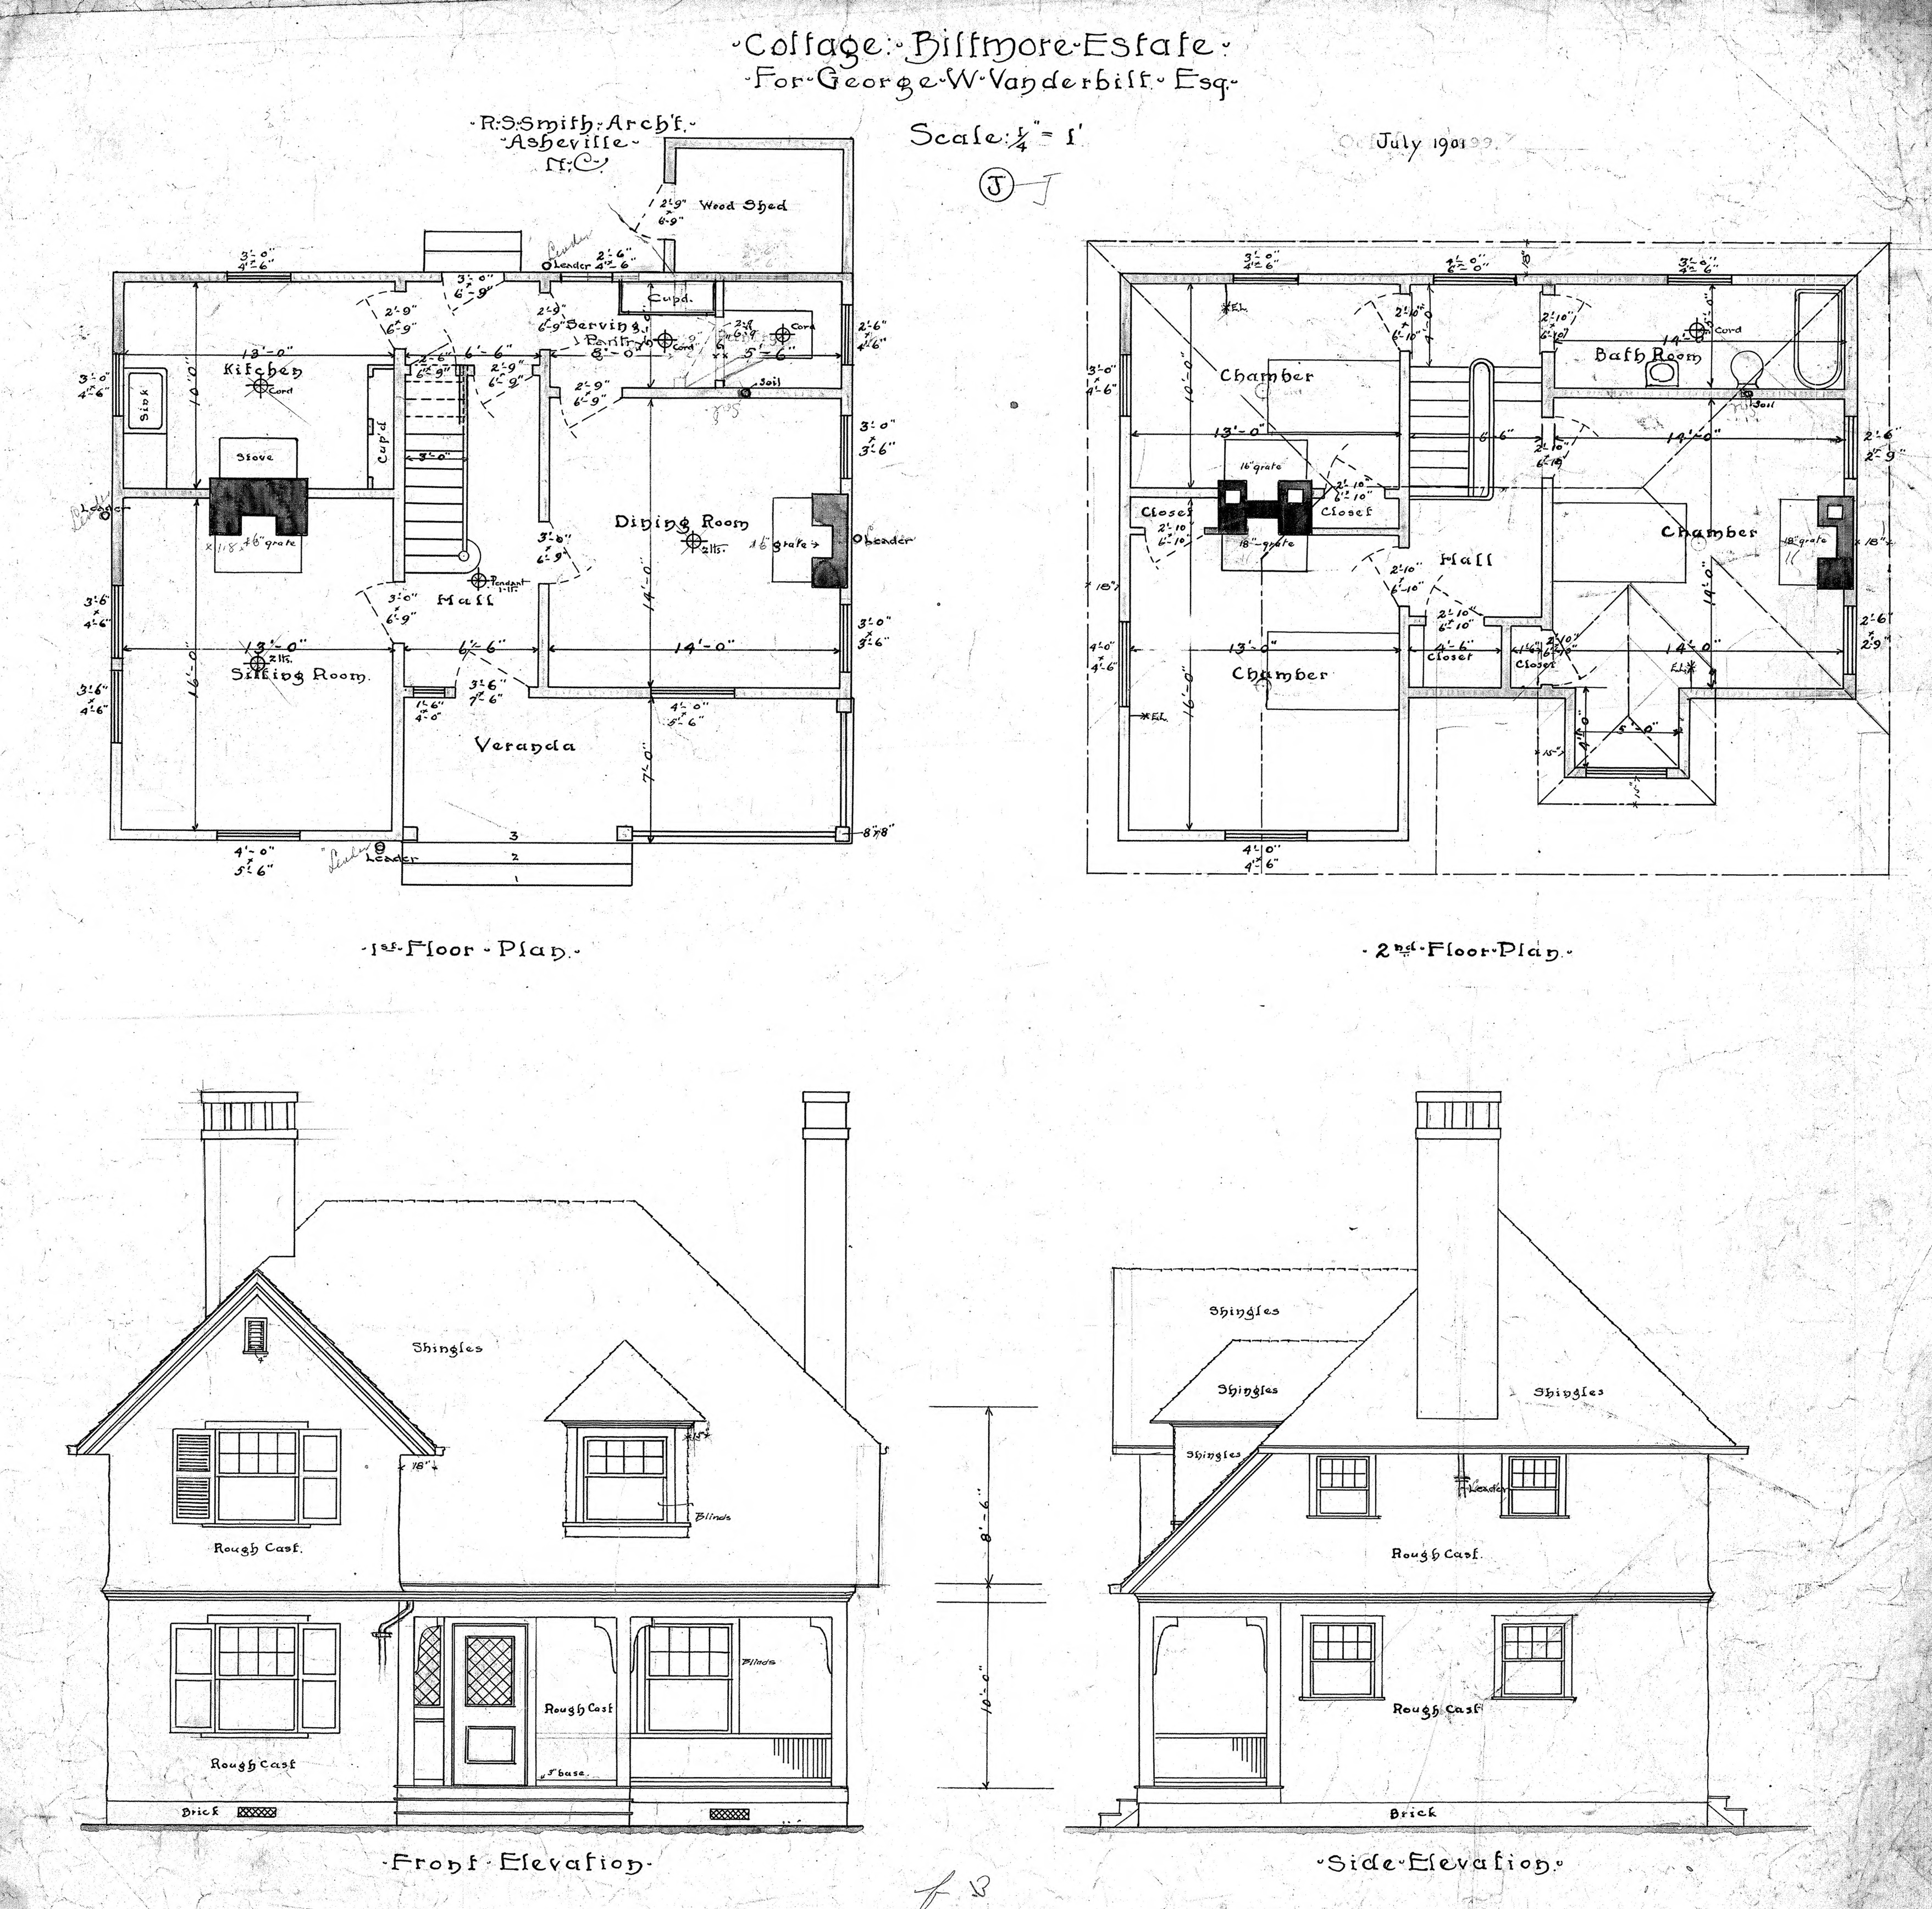 Elevation Floor Plan House : Cottage quot j for geo w vanderbilt esq first and second